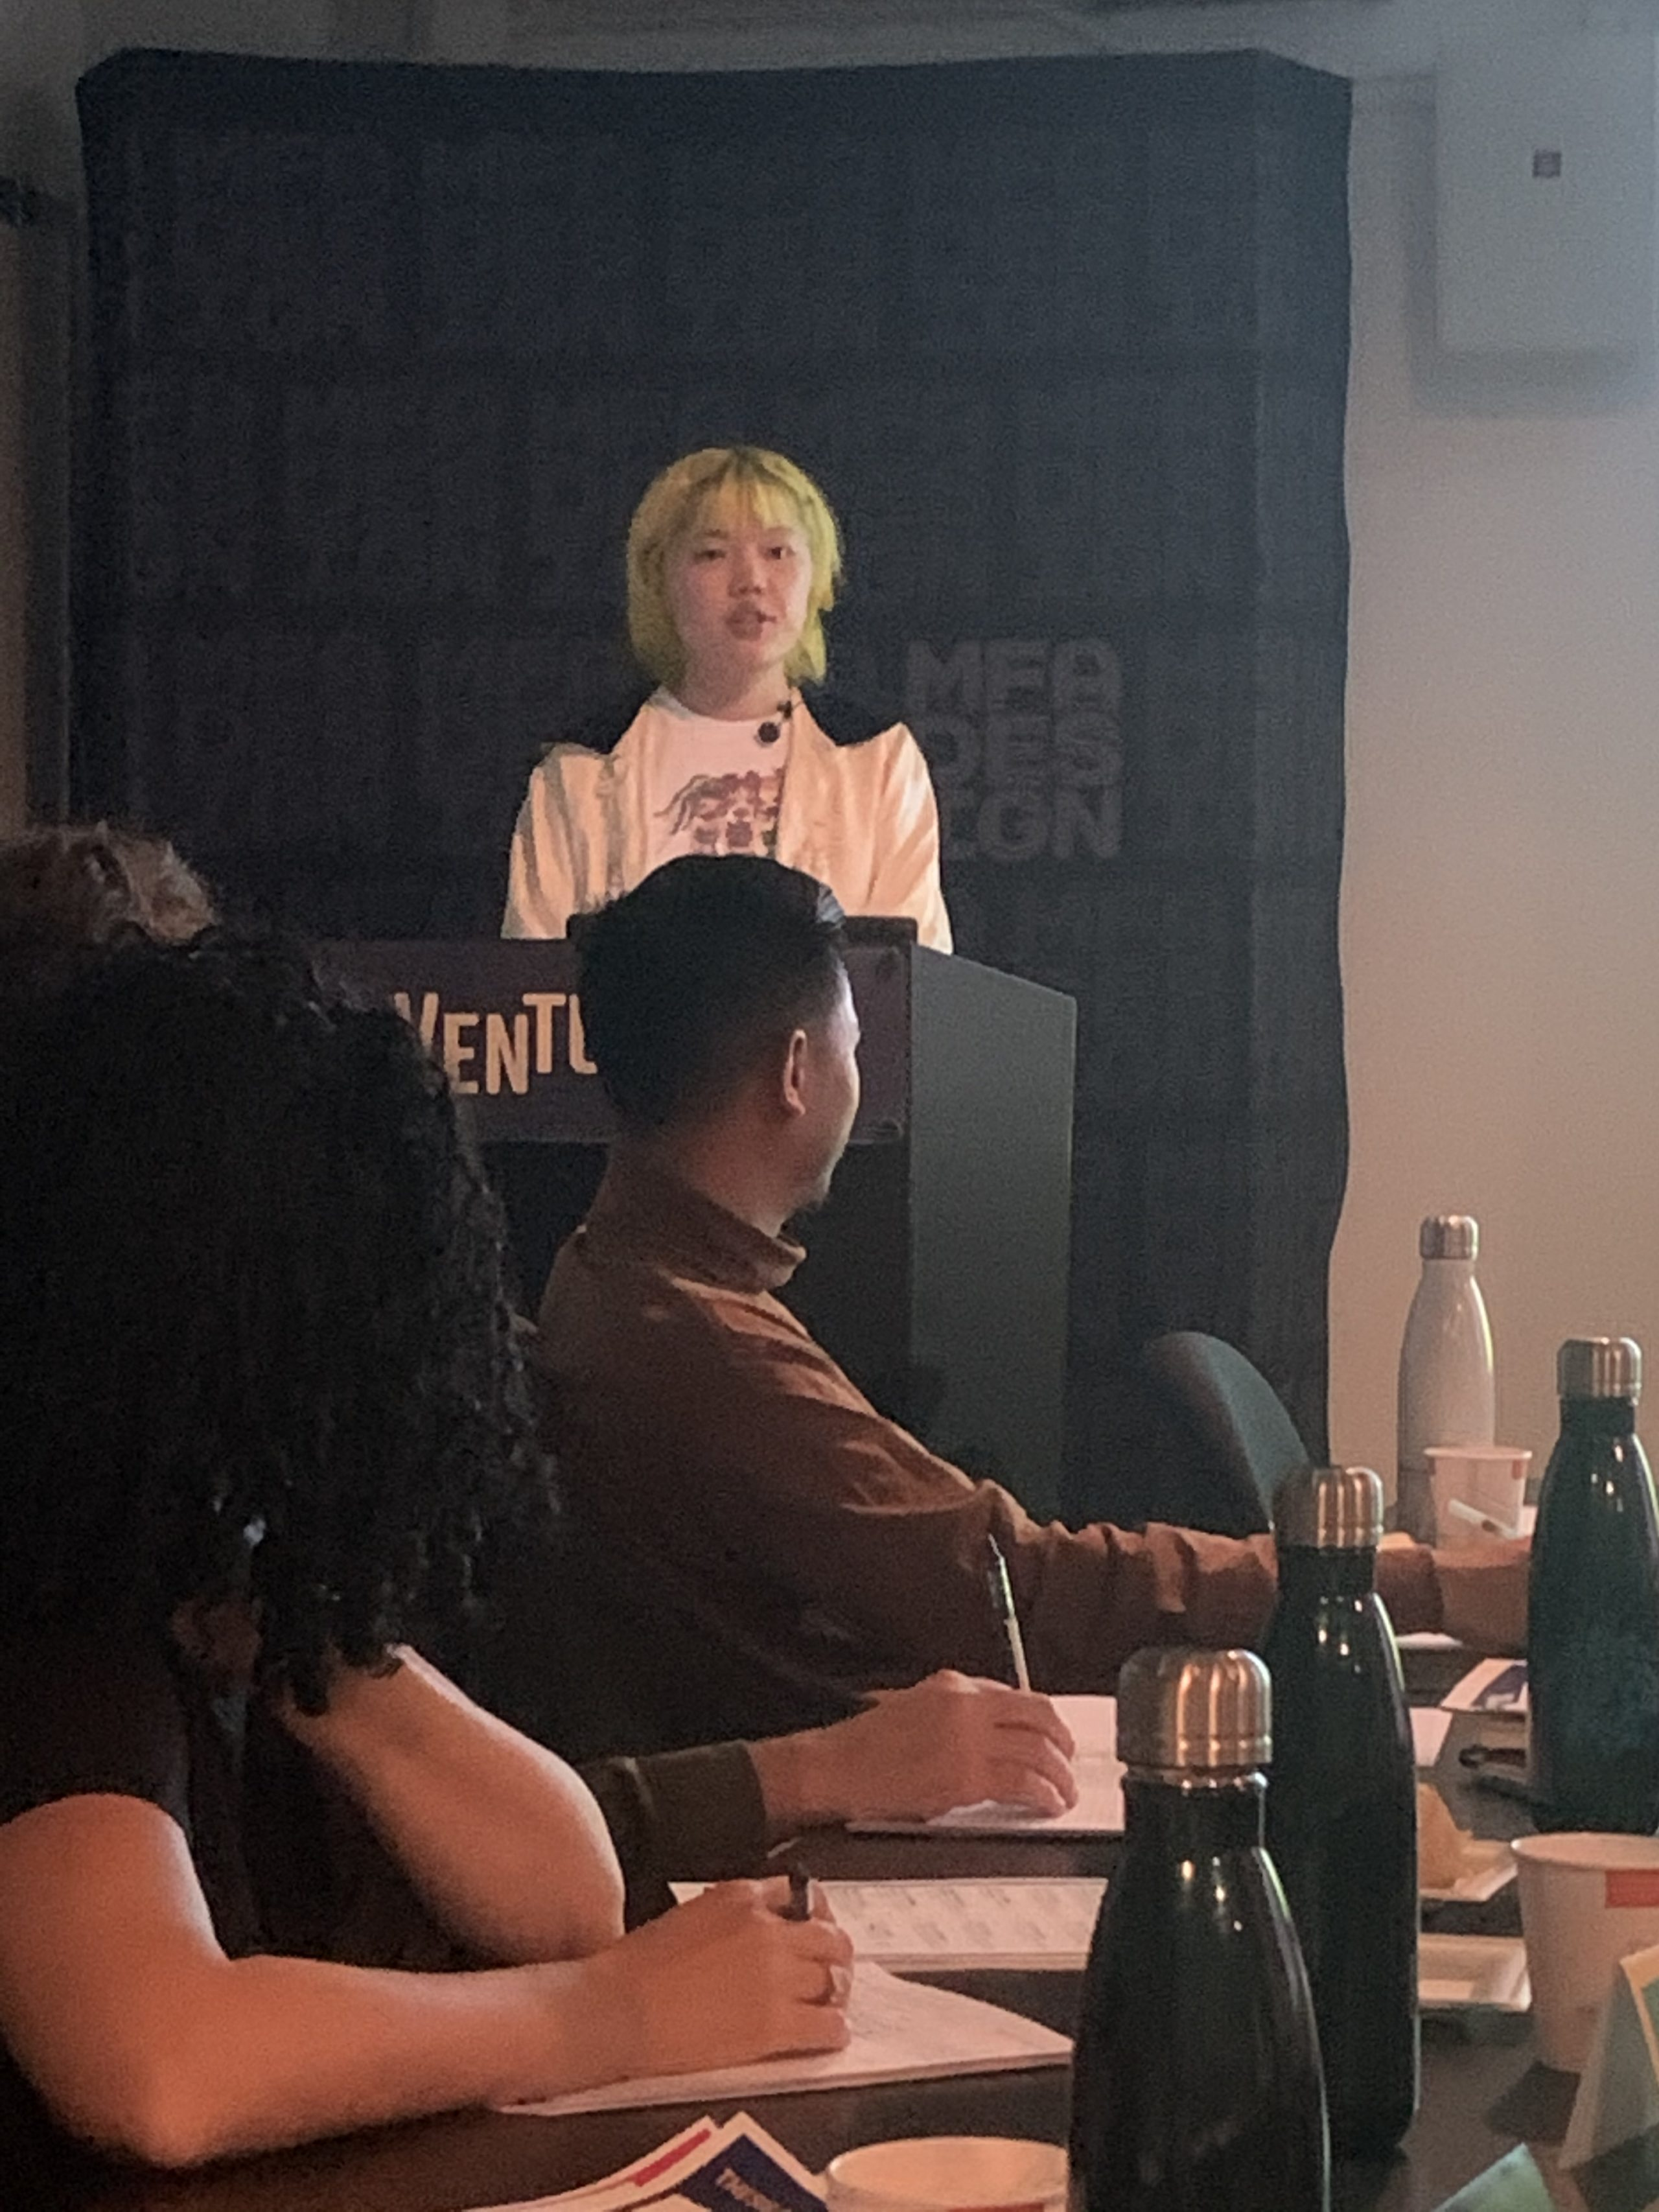 girl with green hair presenting to people